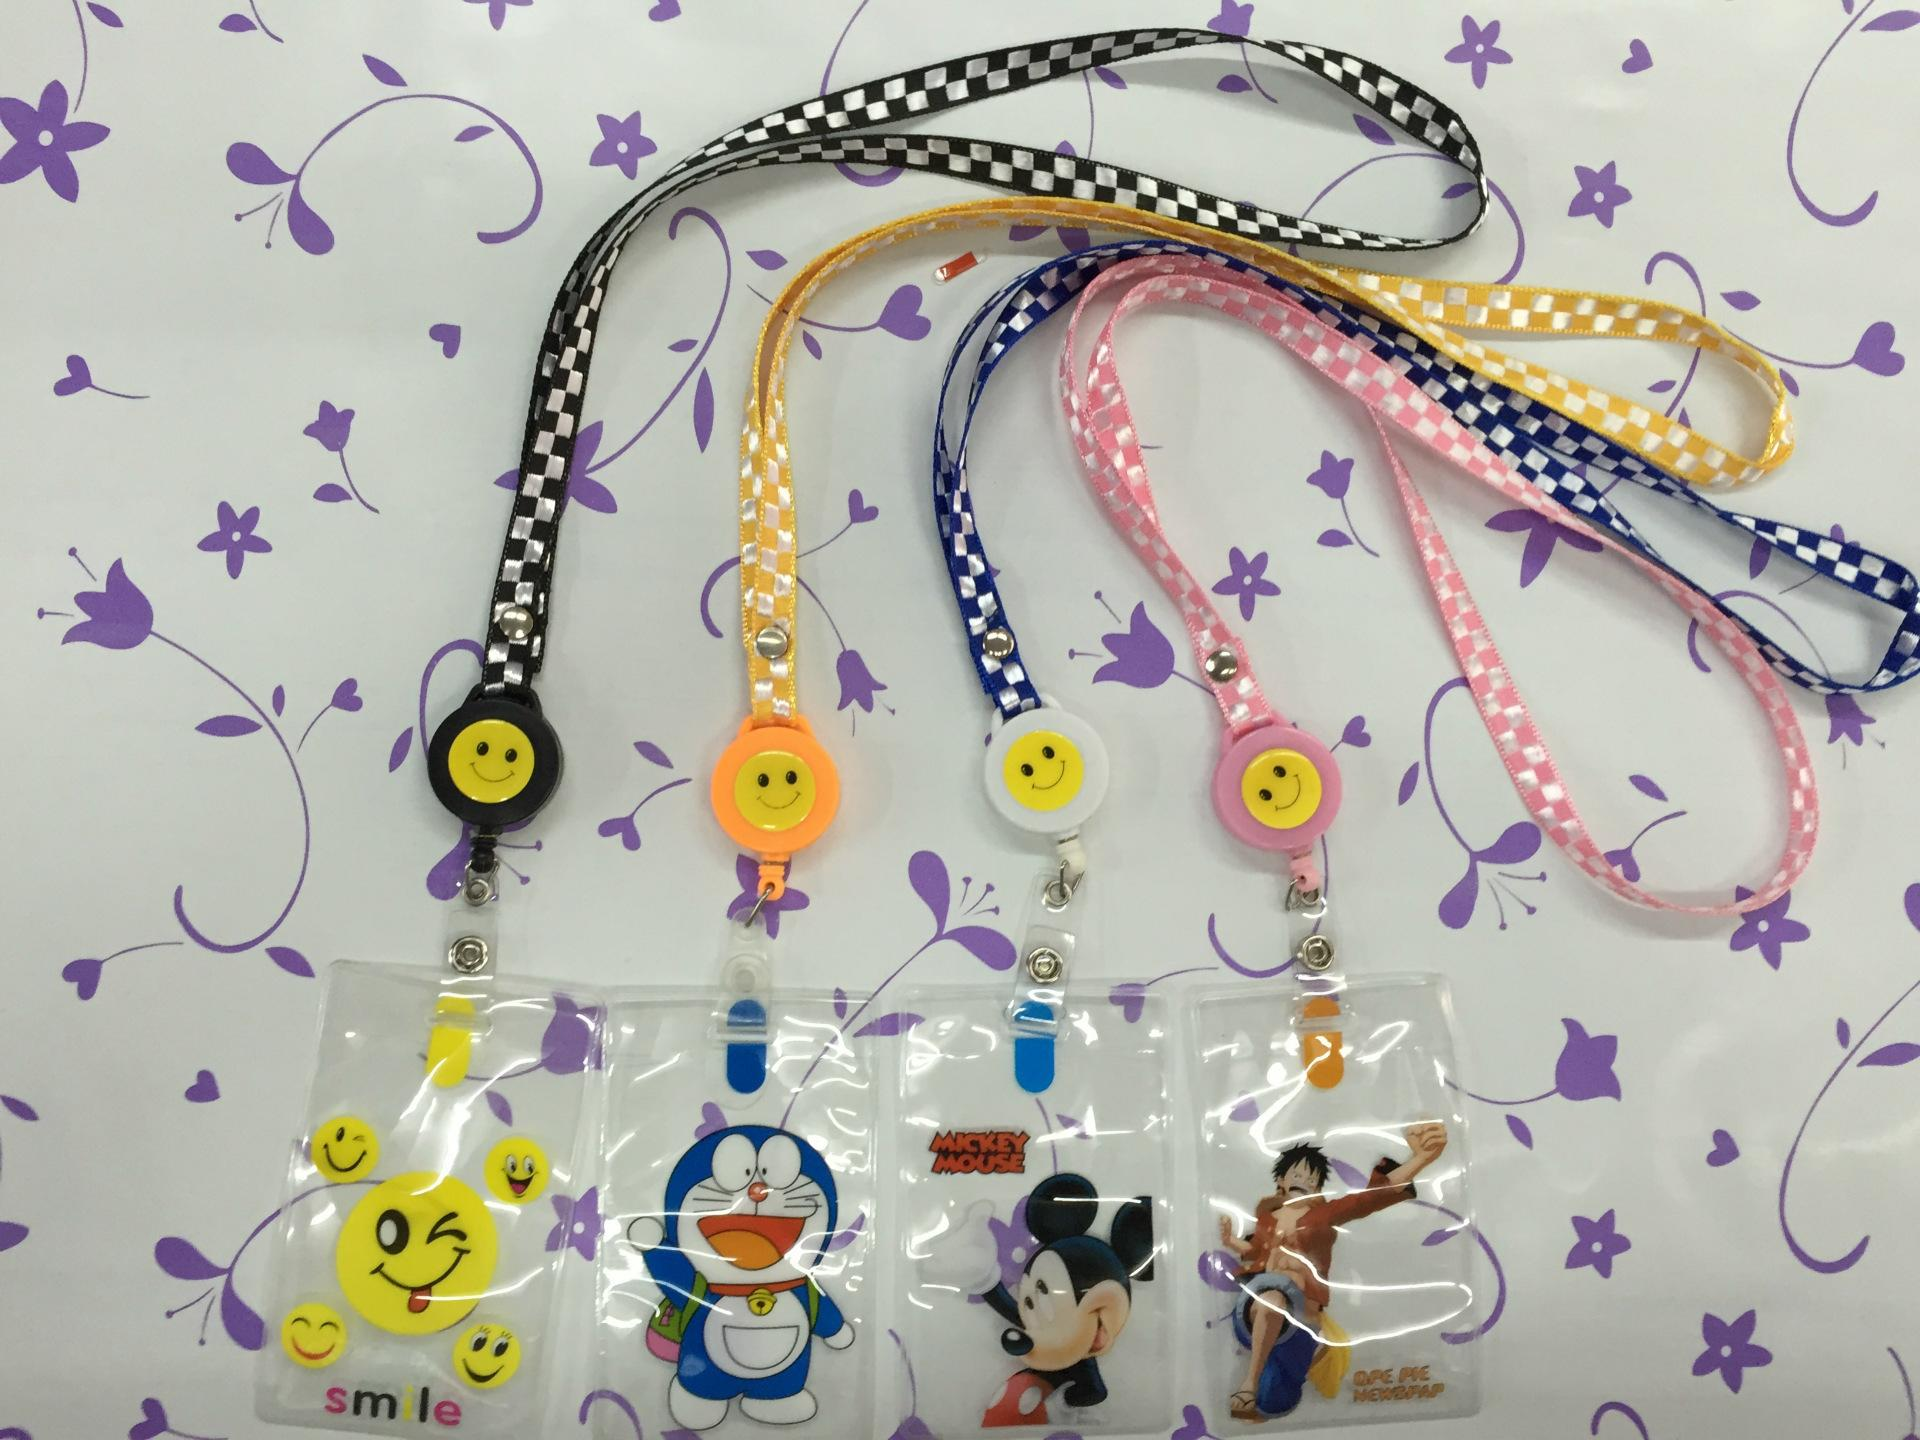 Smiling face is easy to pull clasp The breastpiece button scale identification card sets of hang hang rope working permit Tags wire grid